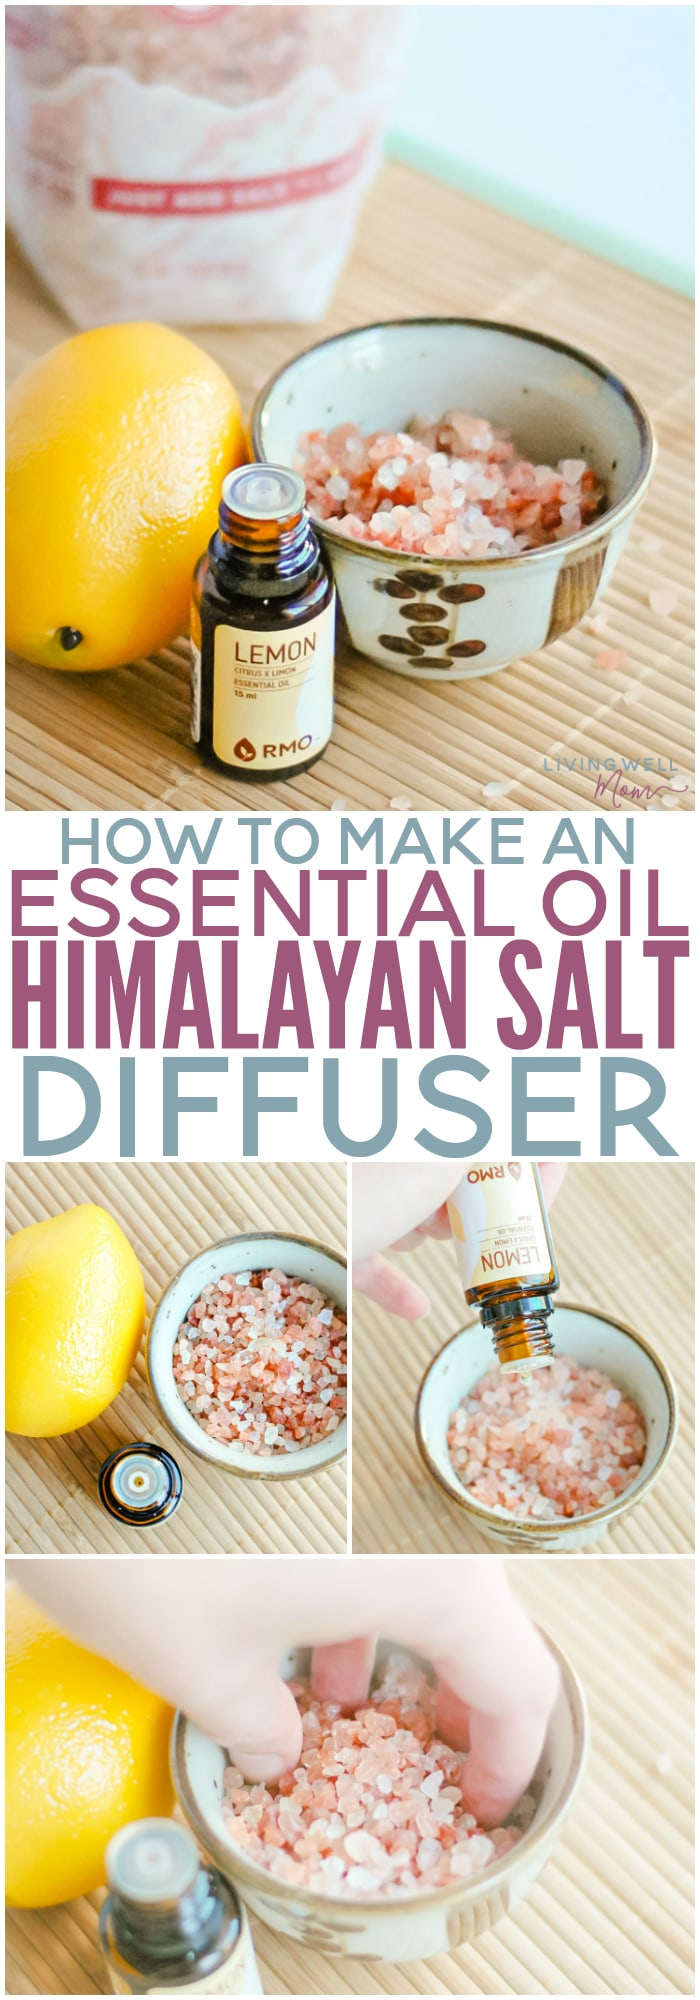 How to make a simple Himalayan Salt Diffuser - it's one of the easiest ways to diffuse essential oils, plus it can help purify the air in your home at the same time!